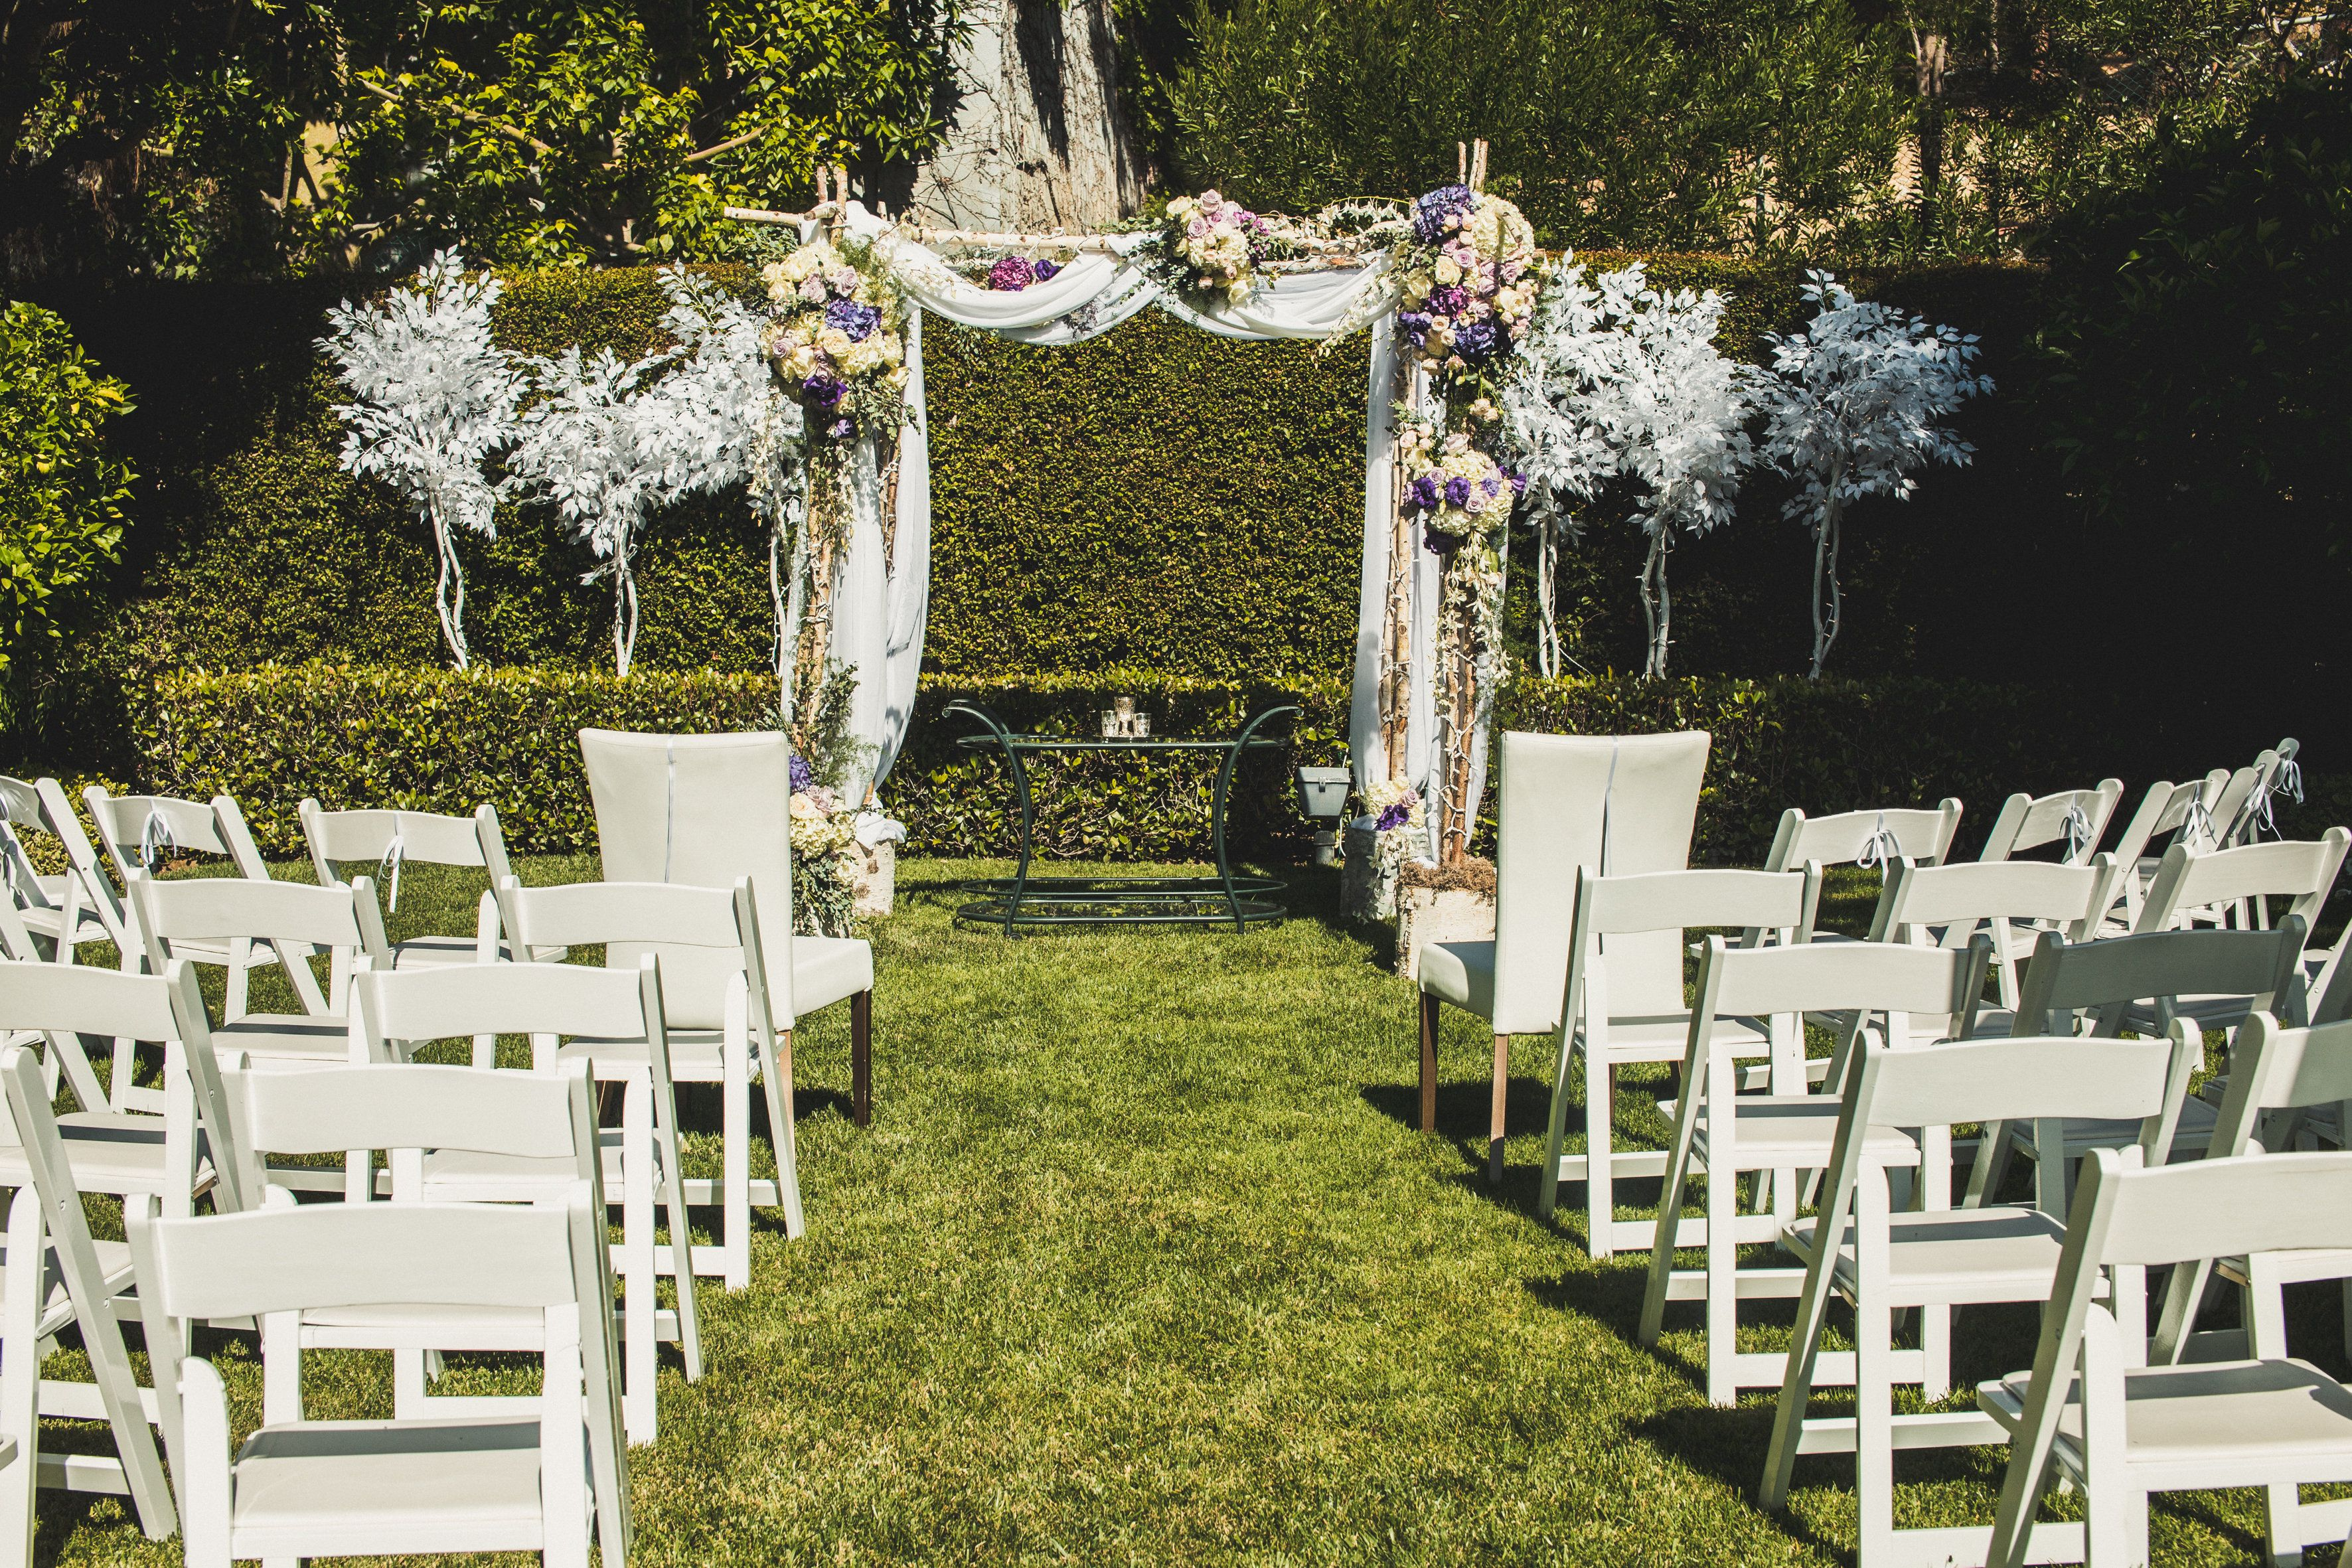 backyard wedding chuppah chuppa white green lavender